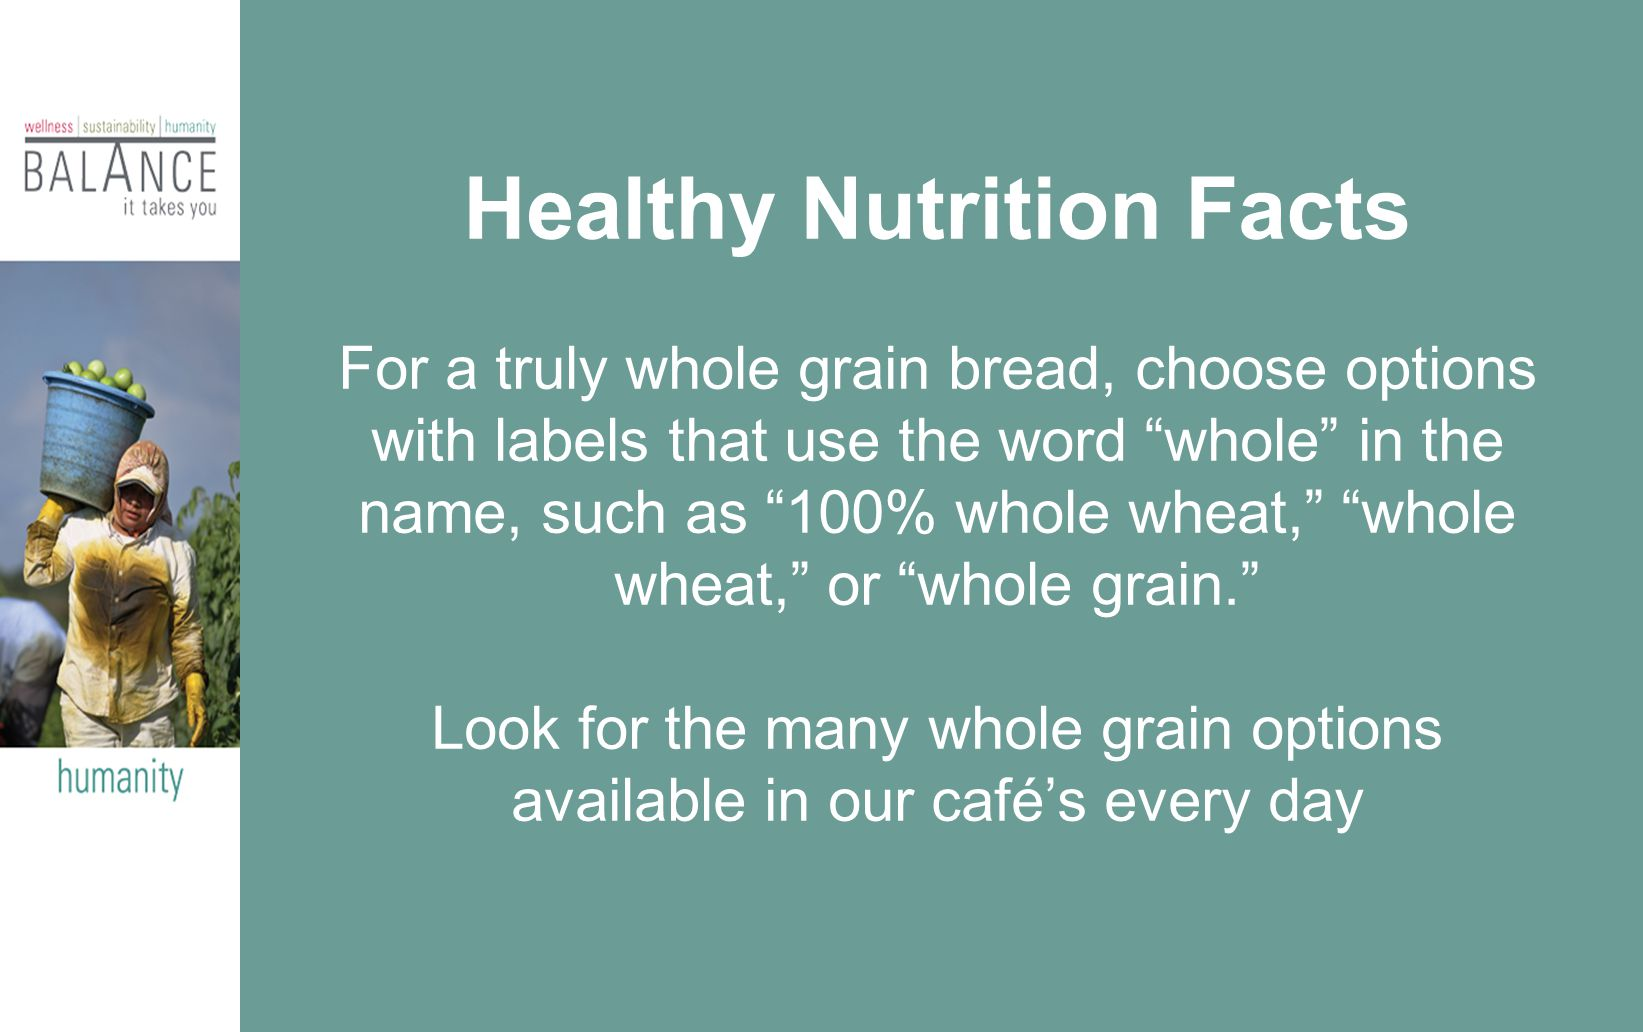 Healthy Nutrition Facts For a truly whole grain bread, choose options with labels that use the word whole in the name, such as 100% whole wheat, whole wheat, or whole grain. Look for the many whole grain options available in our café's every day